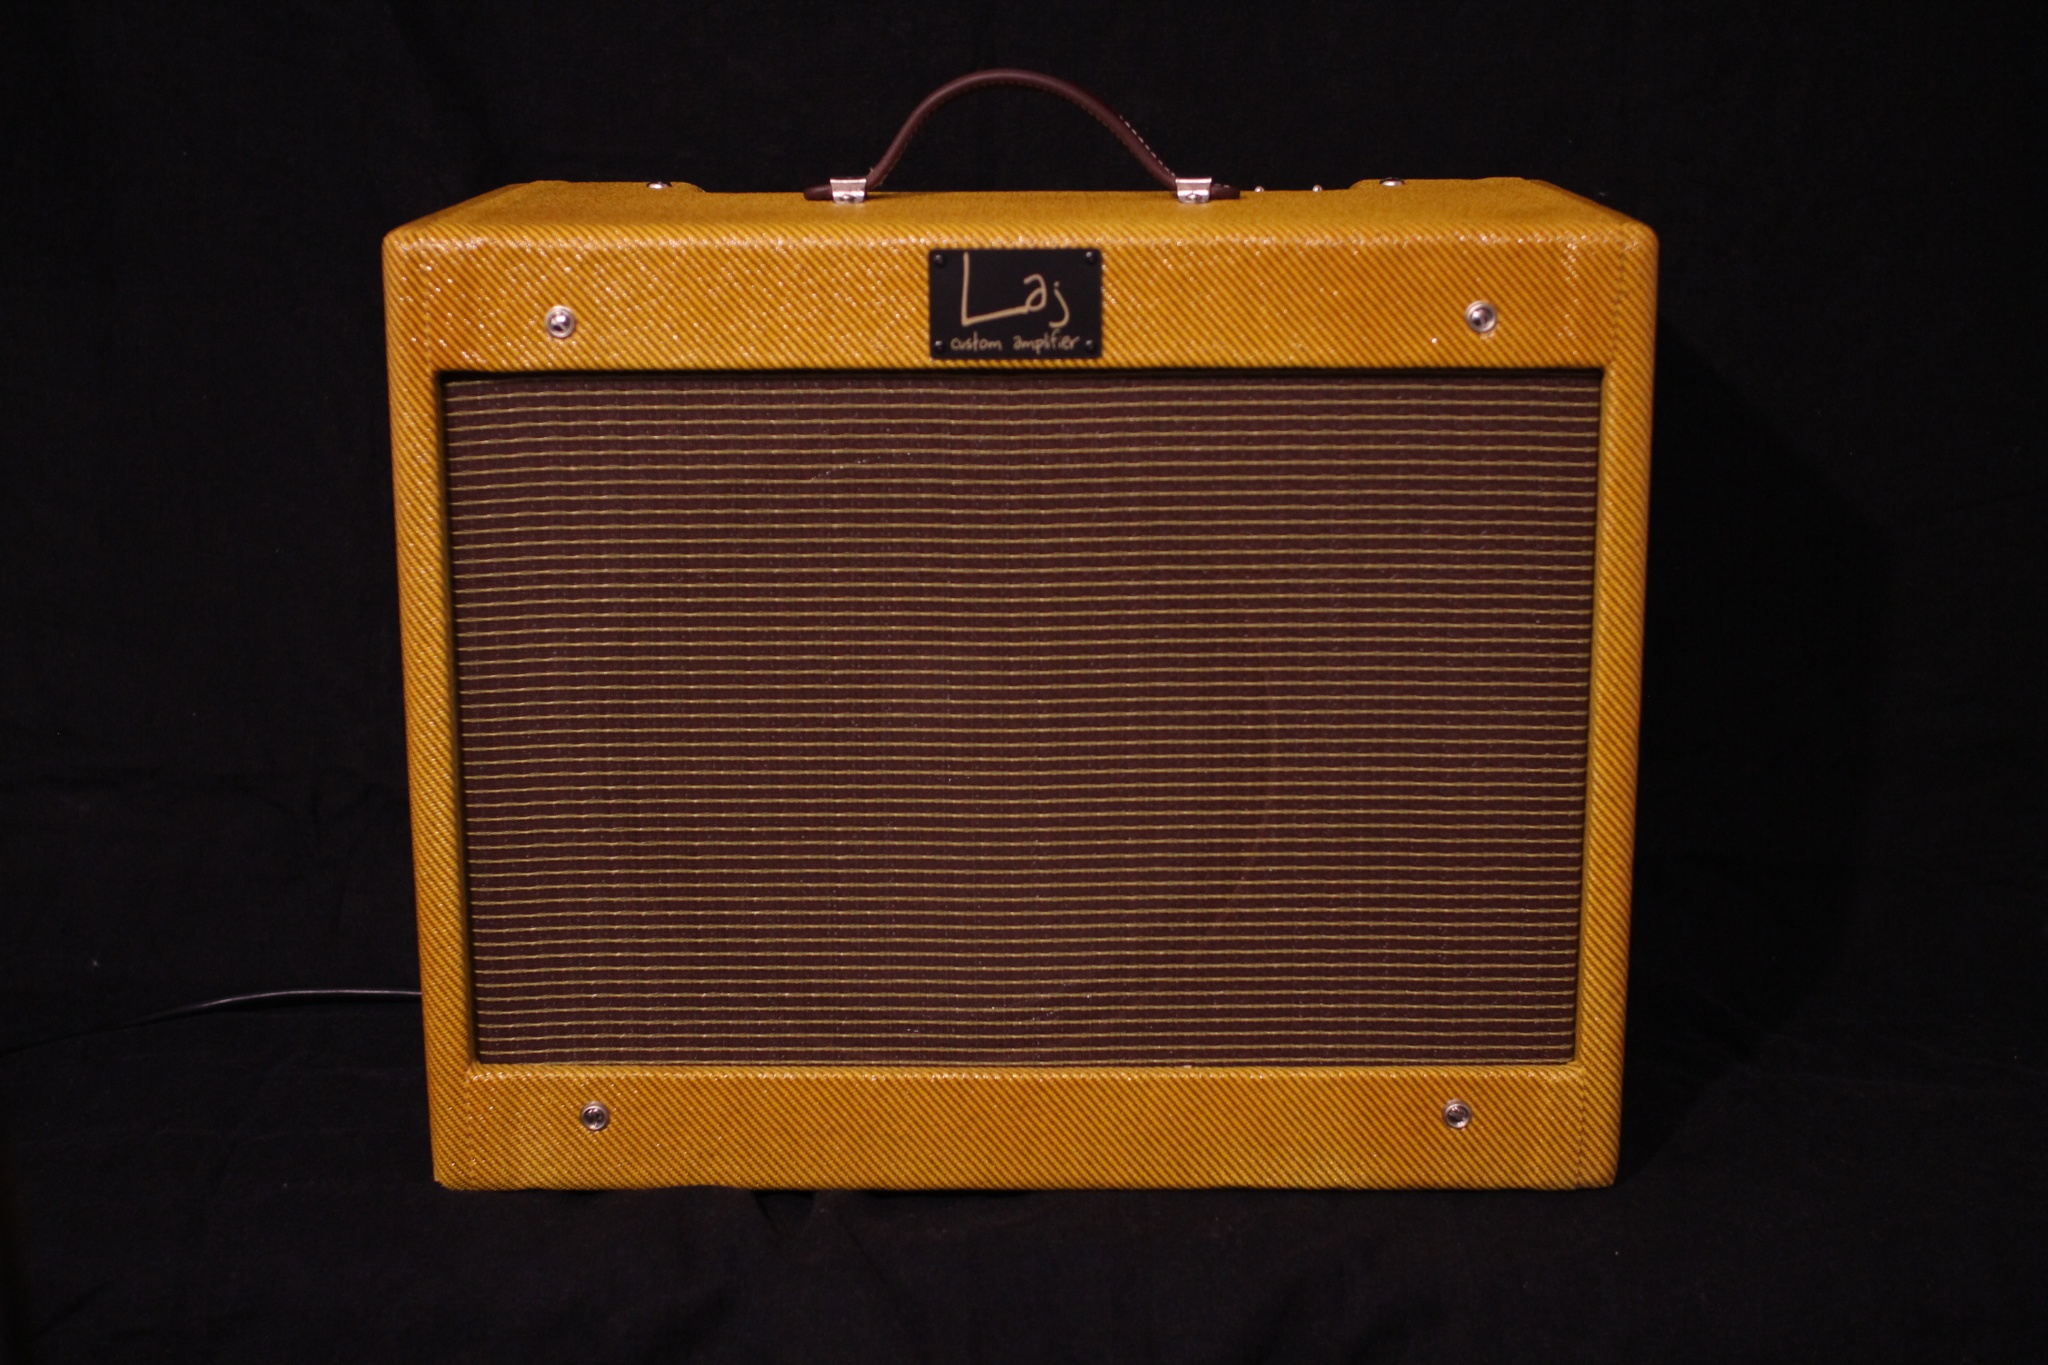 IMG 2167 - Amplificador LAJ Speed Reverb